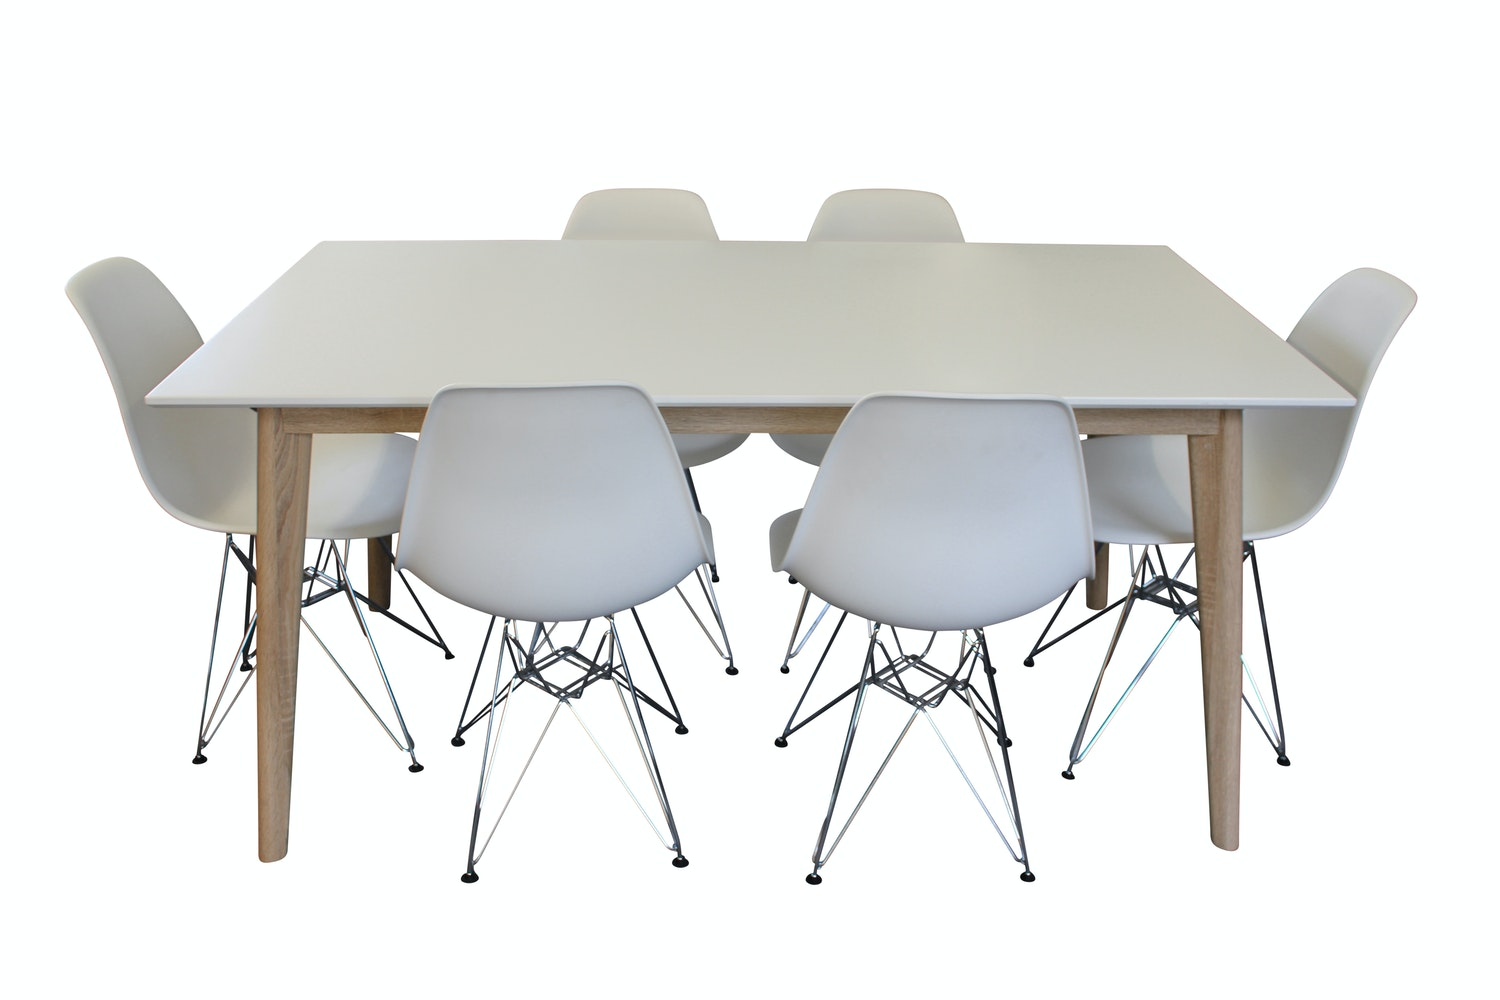 Bt oslo 7 piece dining suite dining settings for sale in for Outdoor furniture yagoona